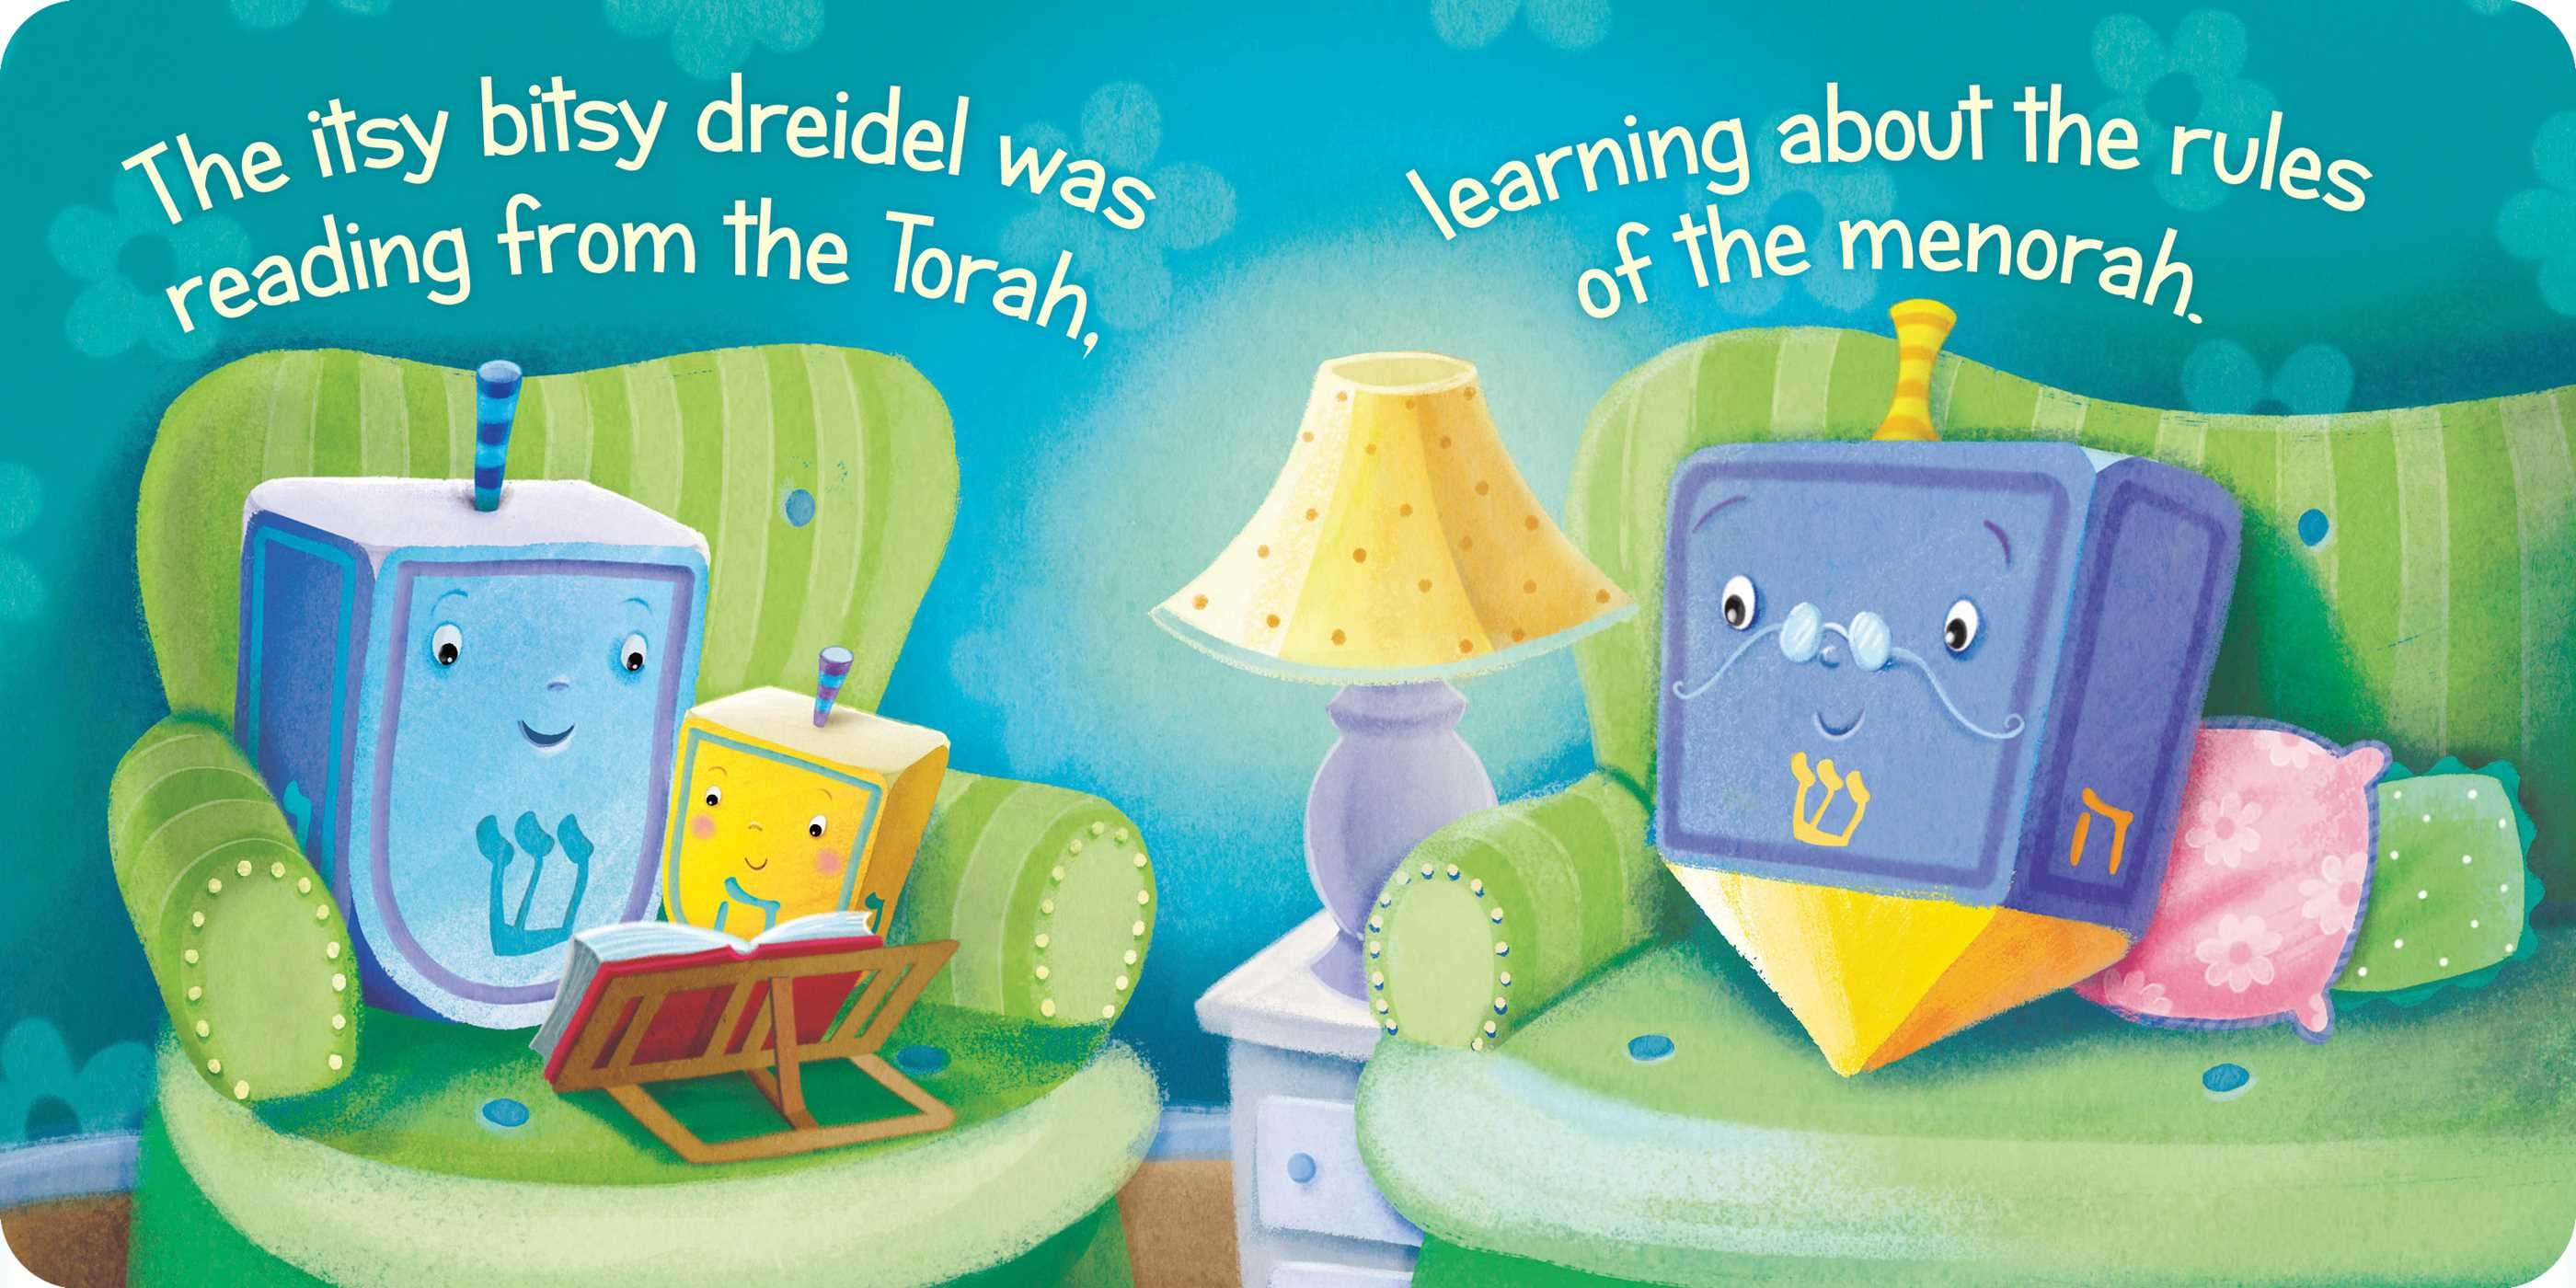 The itsy bitsy dreidel 9781534400221.in03